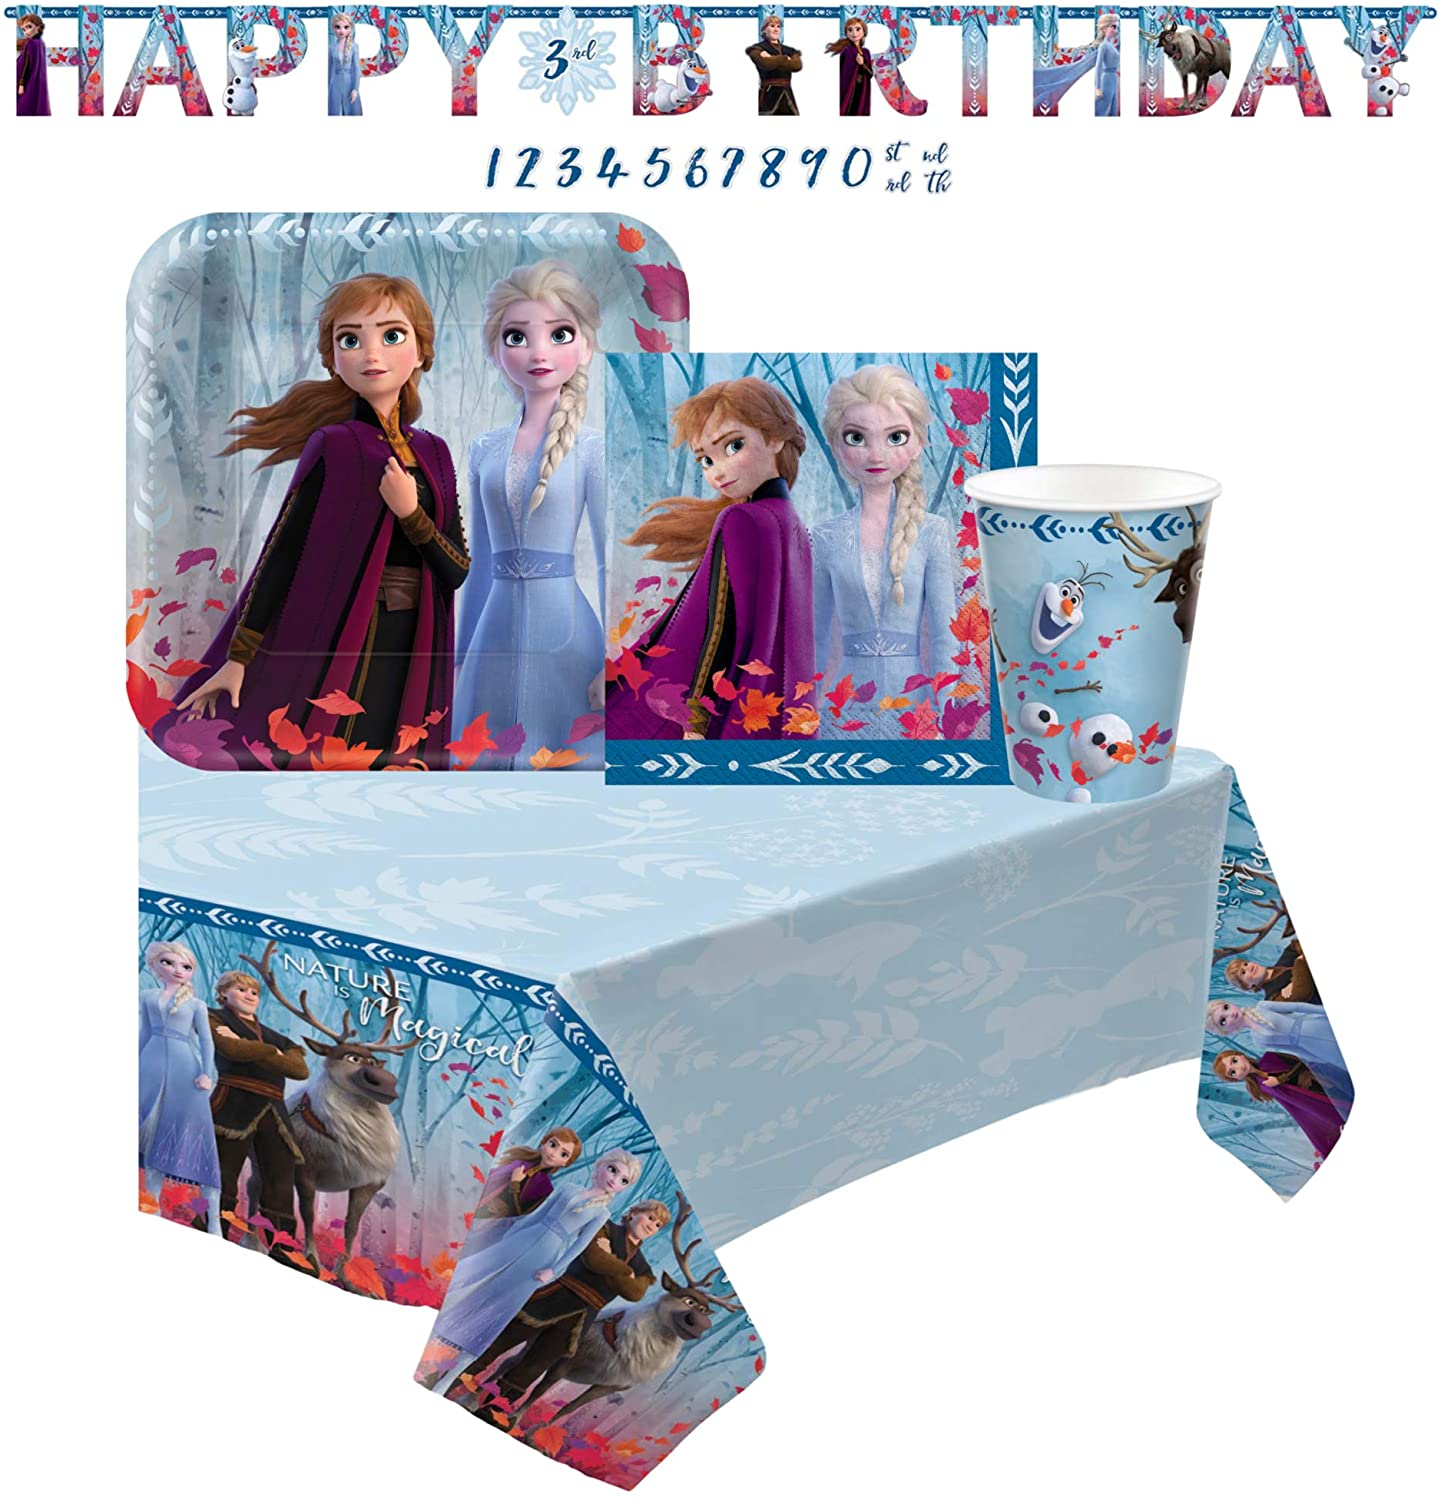 Disney Frozen 2 Themed Birthday Party Supplies for 16 Guests - Bundle Includes Paper Plates, Napkins, Cups Table Cover and Banner